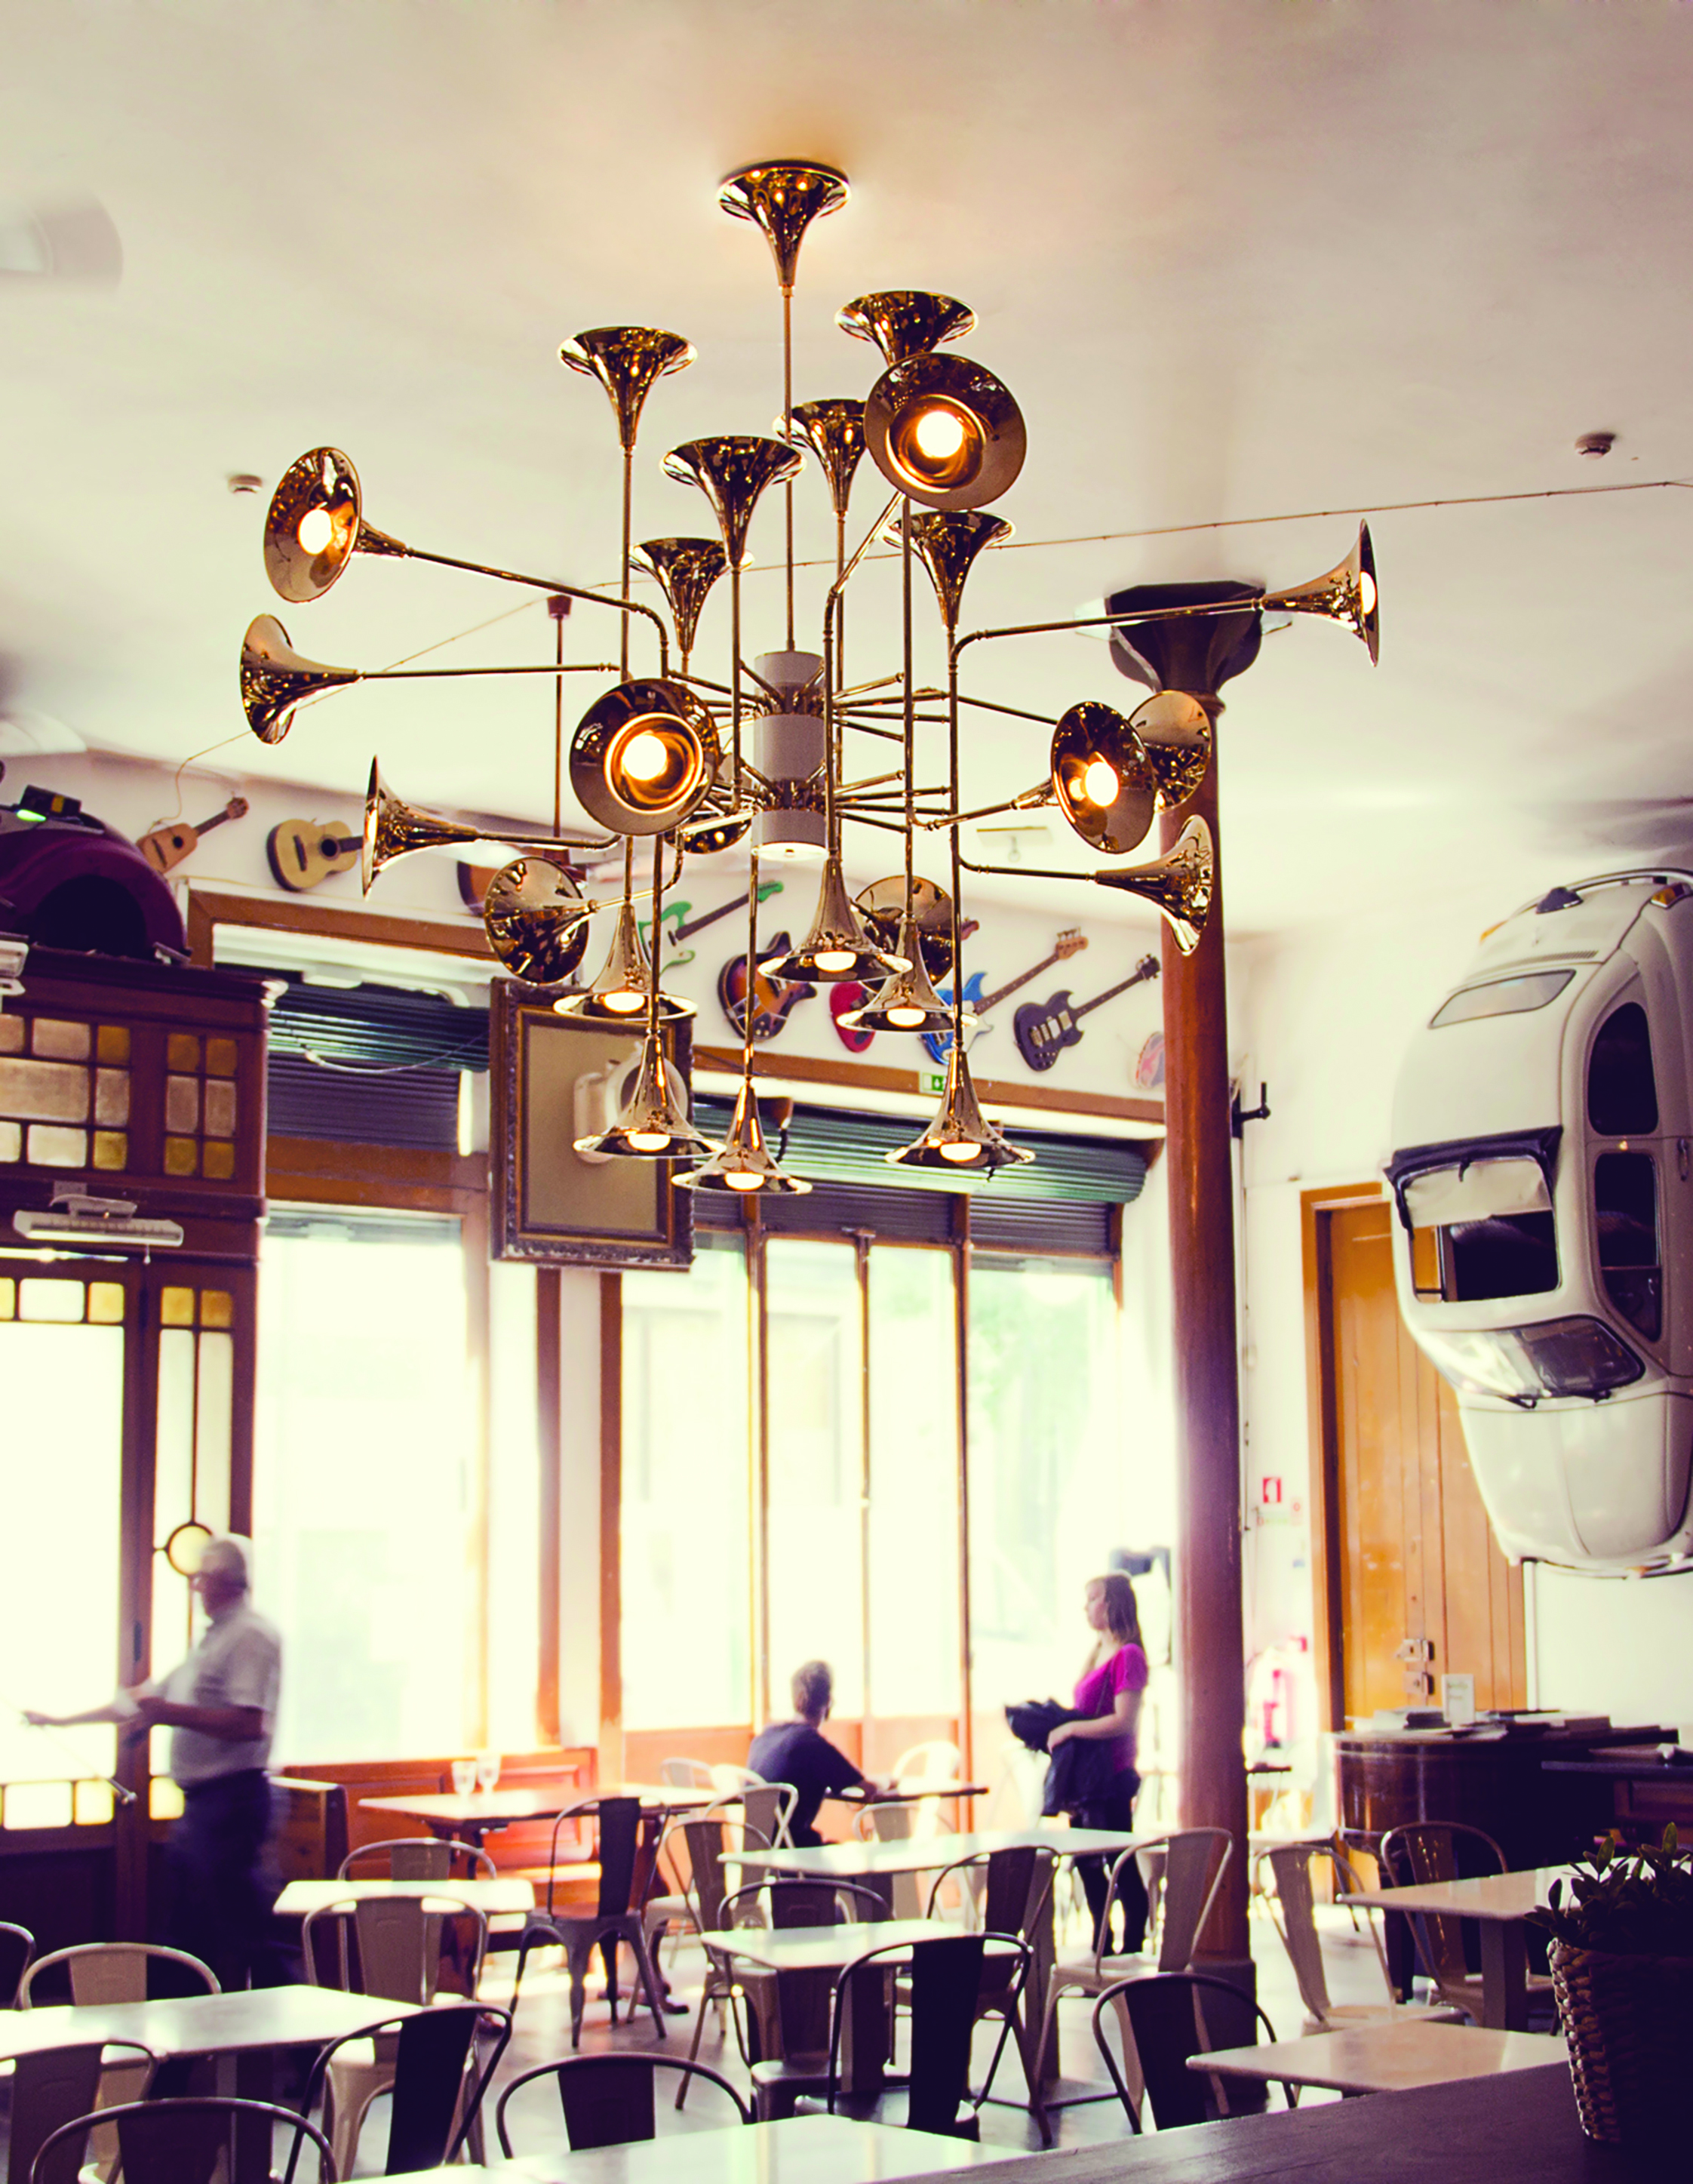 Make the Most of Your Restaurant Decor with These Lighting Designs (1) lighting design Make the Most of Your Restaurant Decor with These Lighting Designs Make the Most of Your Restaurant Decor with These Lighting Designs 1